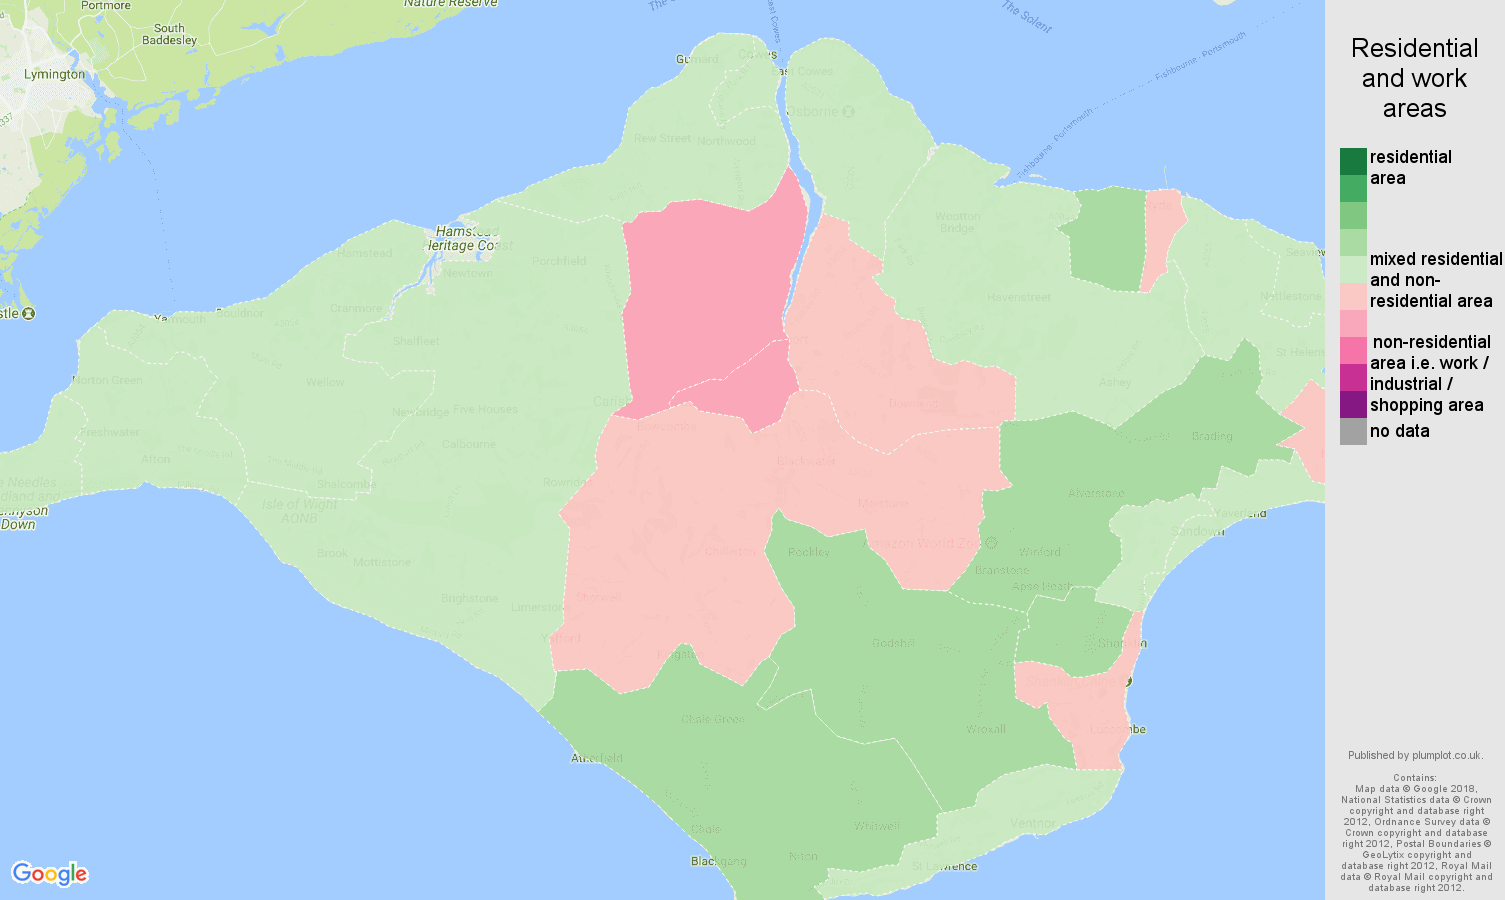 Isle of Wight residential areas map